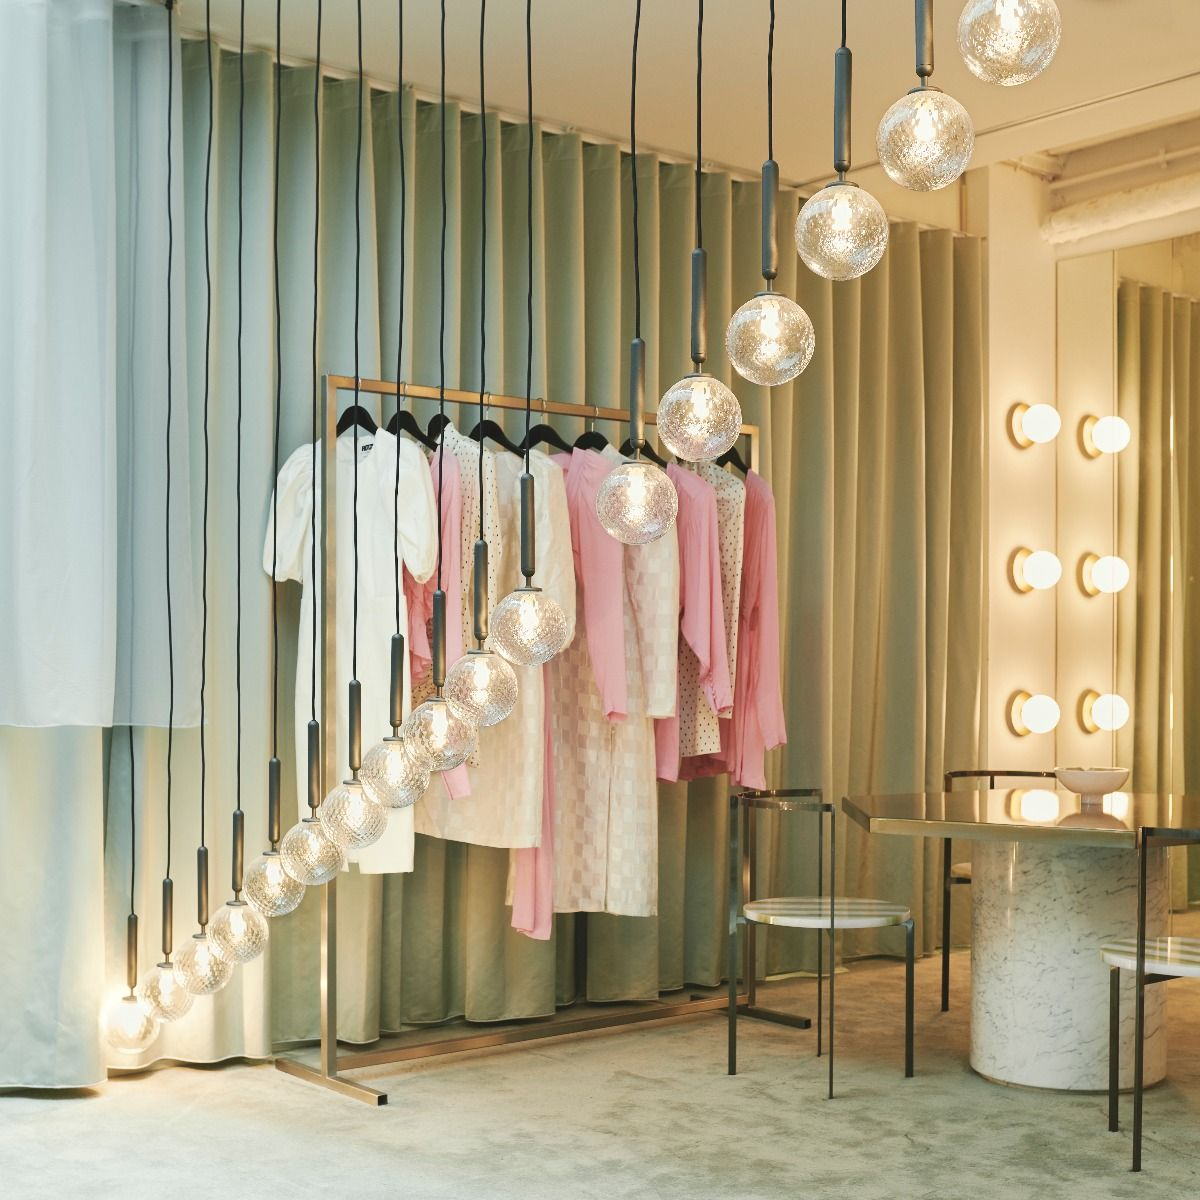 Nuura Lighting Miira Pendant one hanging in a clothes store